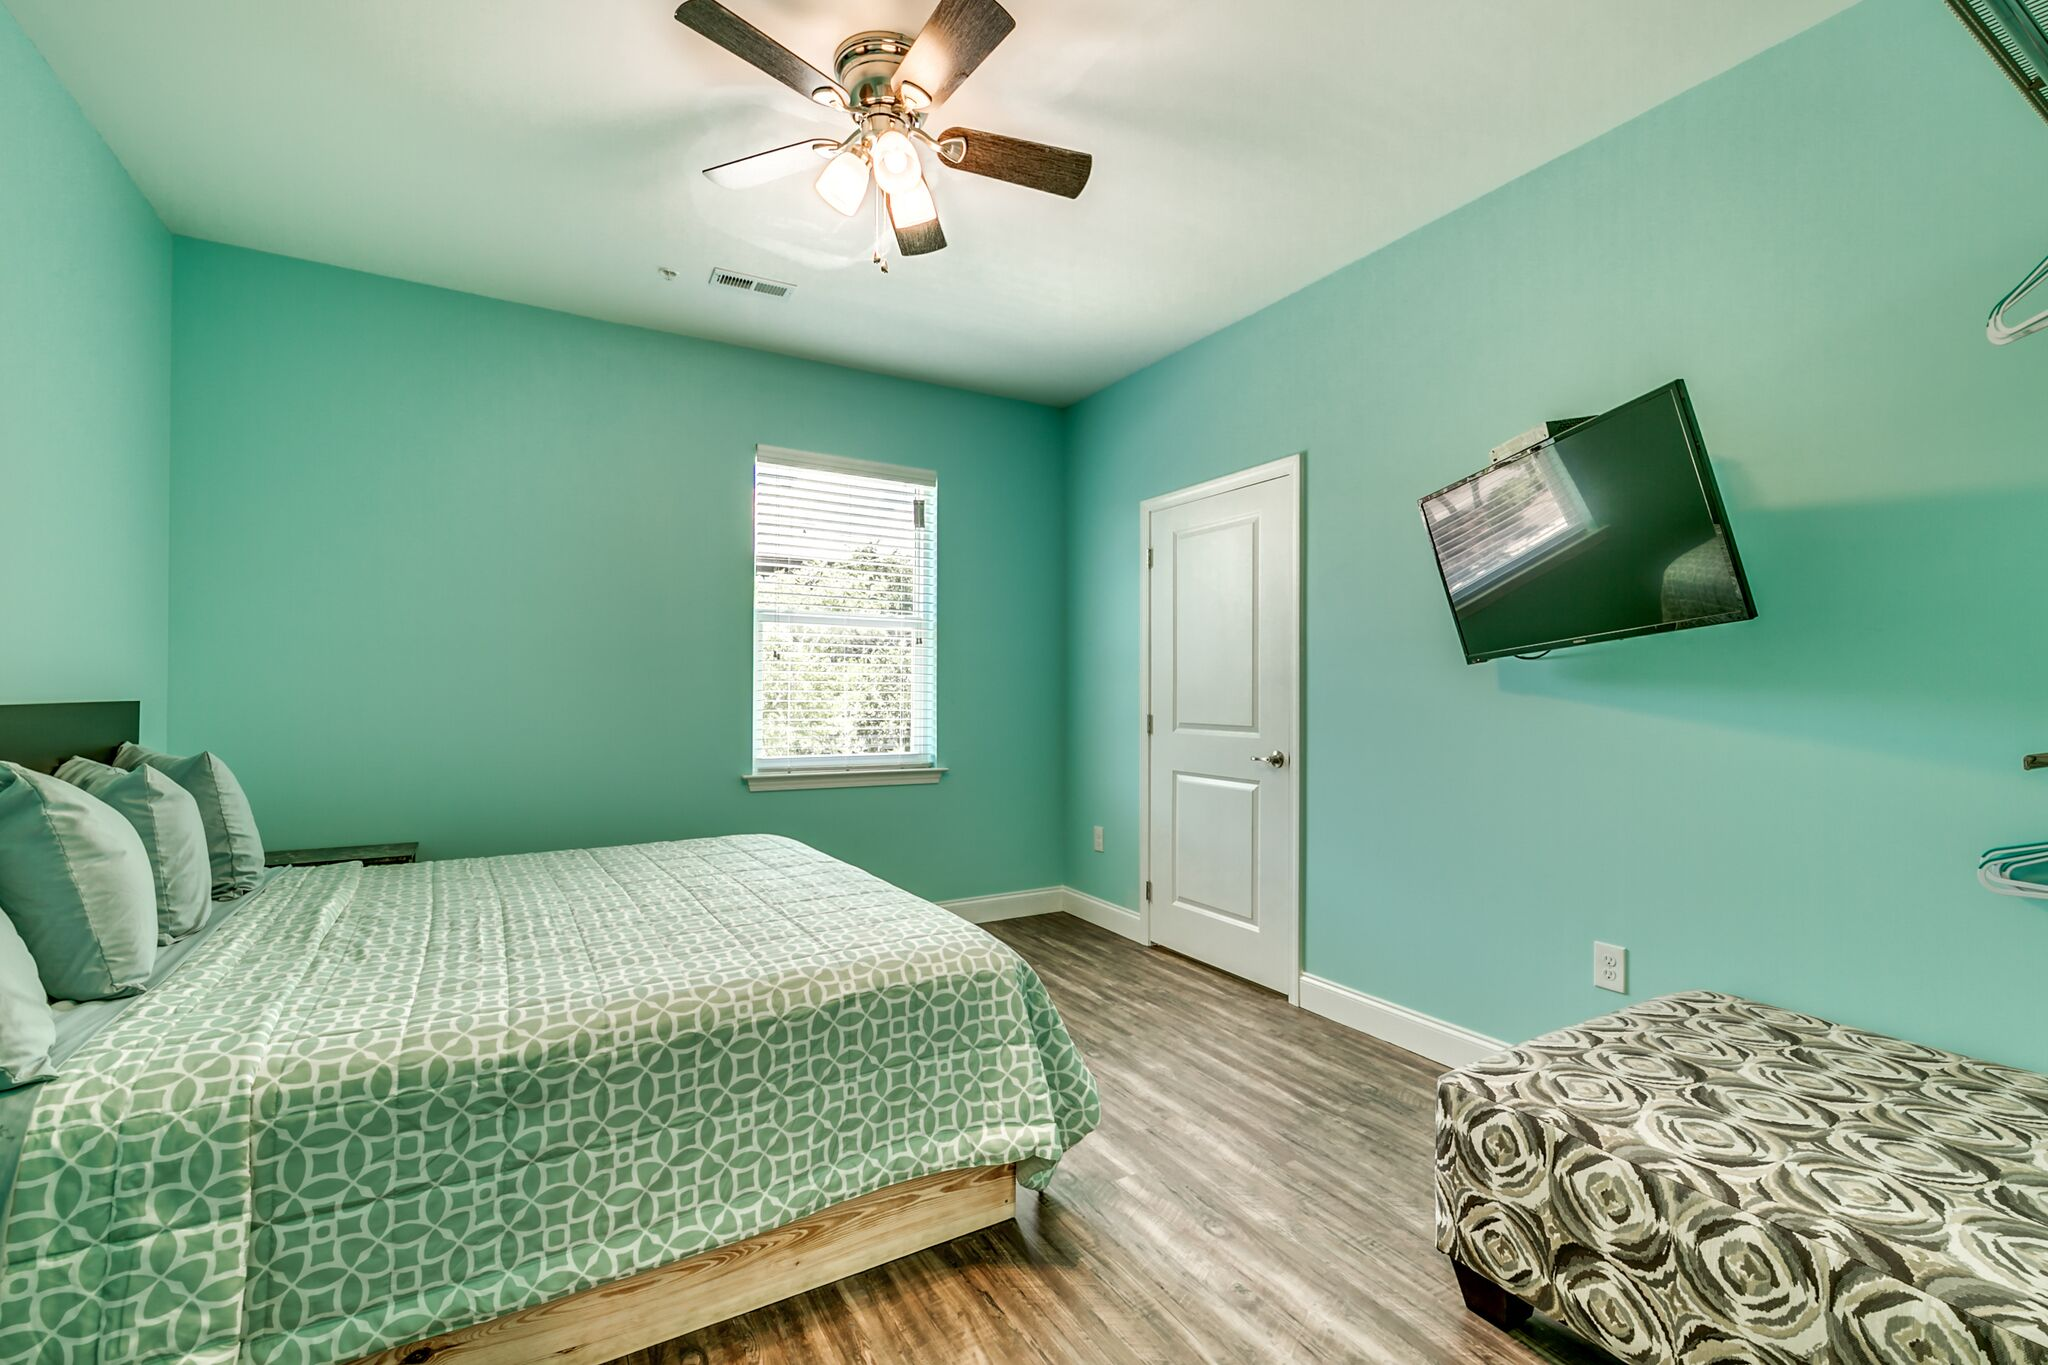 208 3rd Ave bedroom.